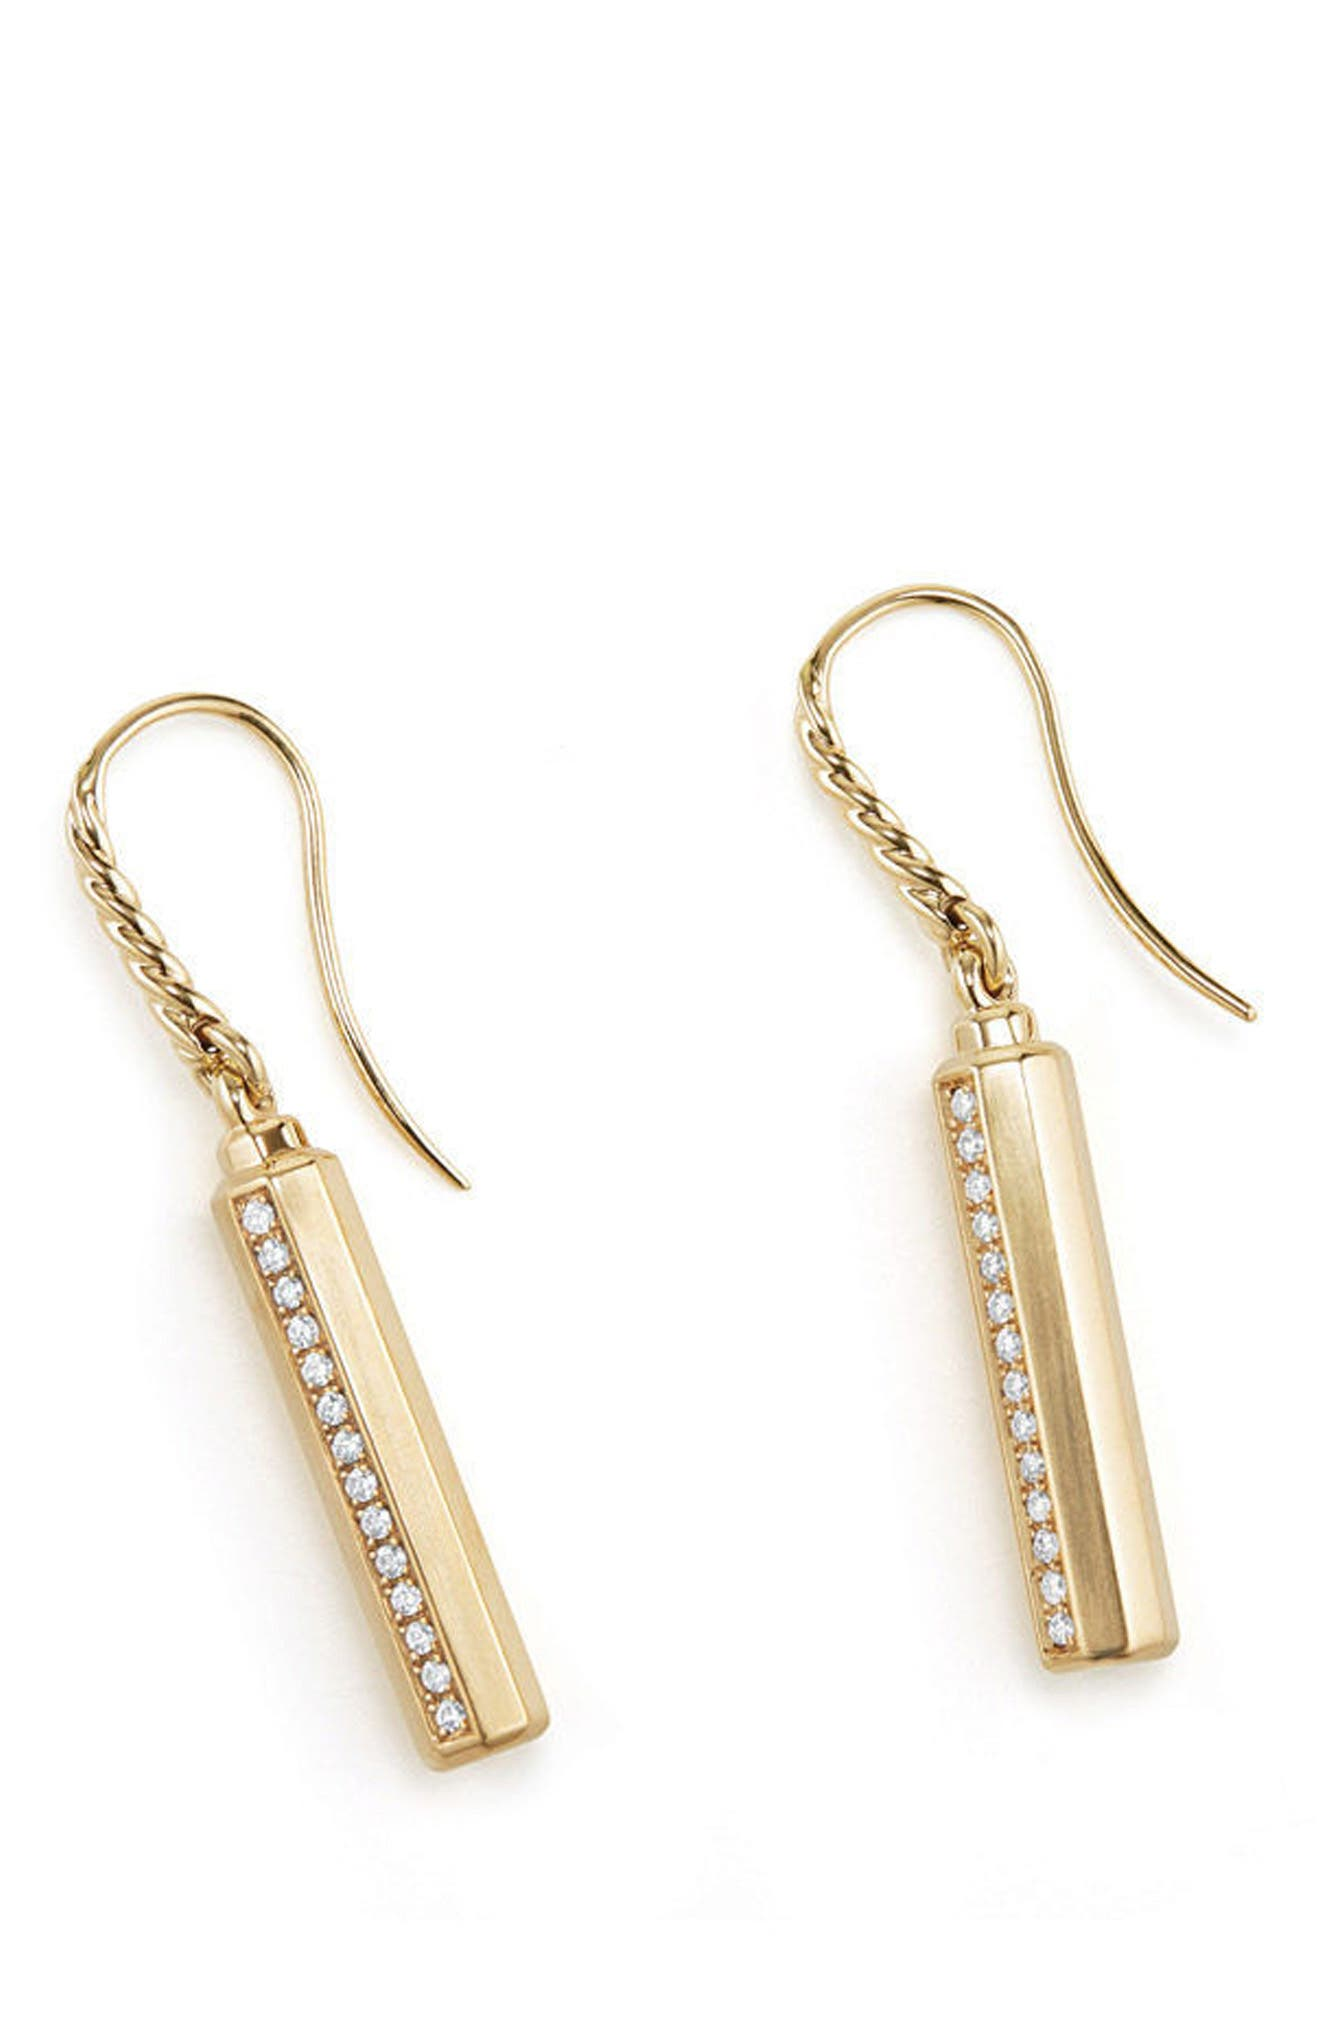 Barrels Drop Earrings with Diamonds in 18k Gold,                             Alternate thumbnail 2, color,                             YELLOW GOLD